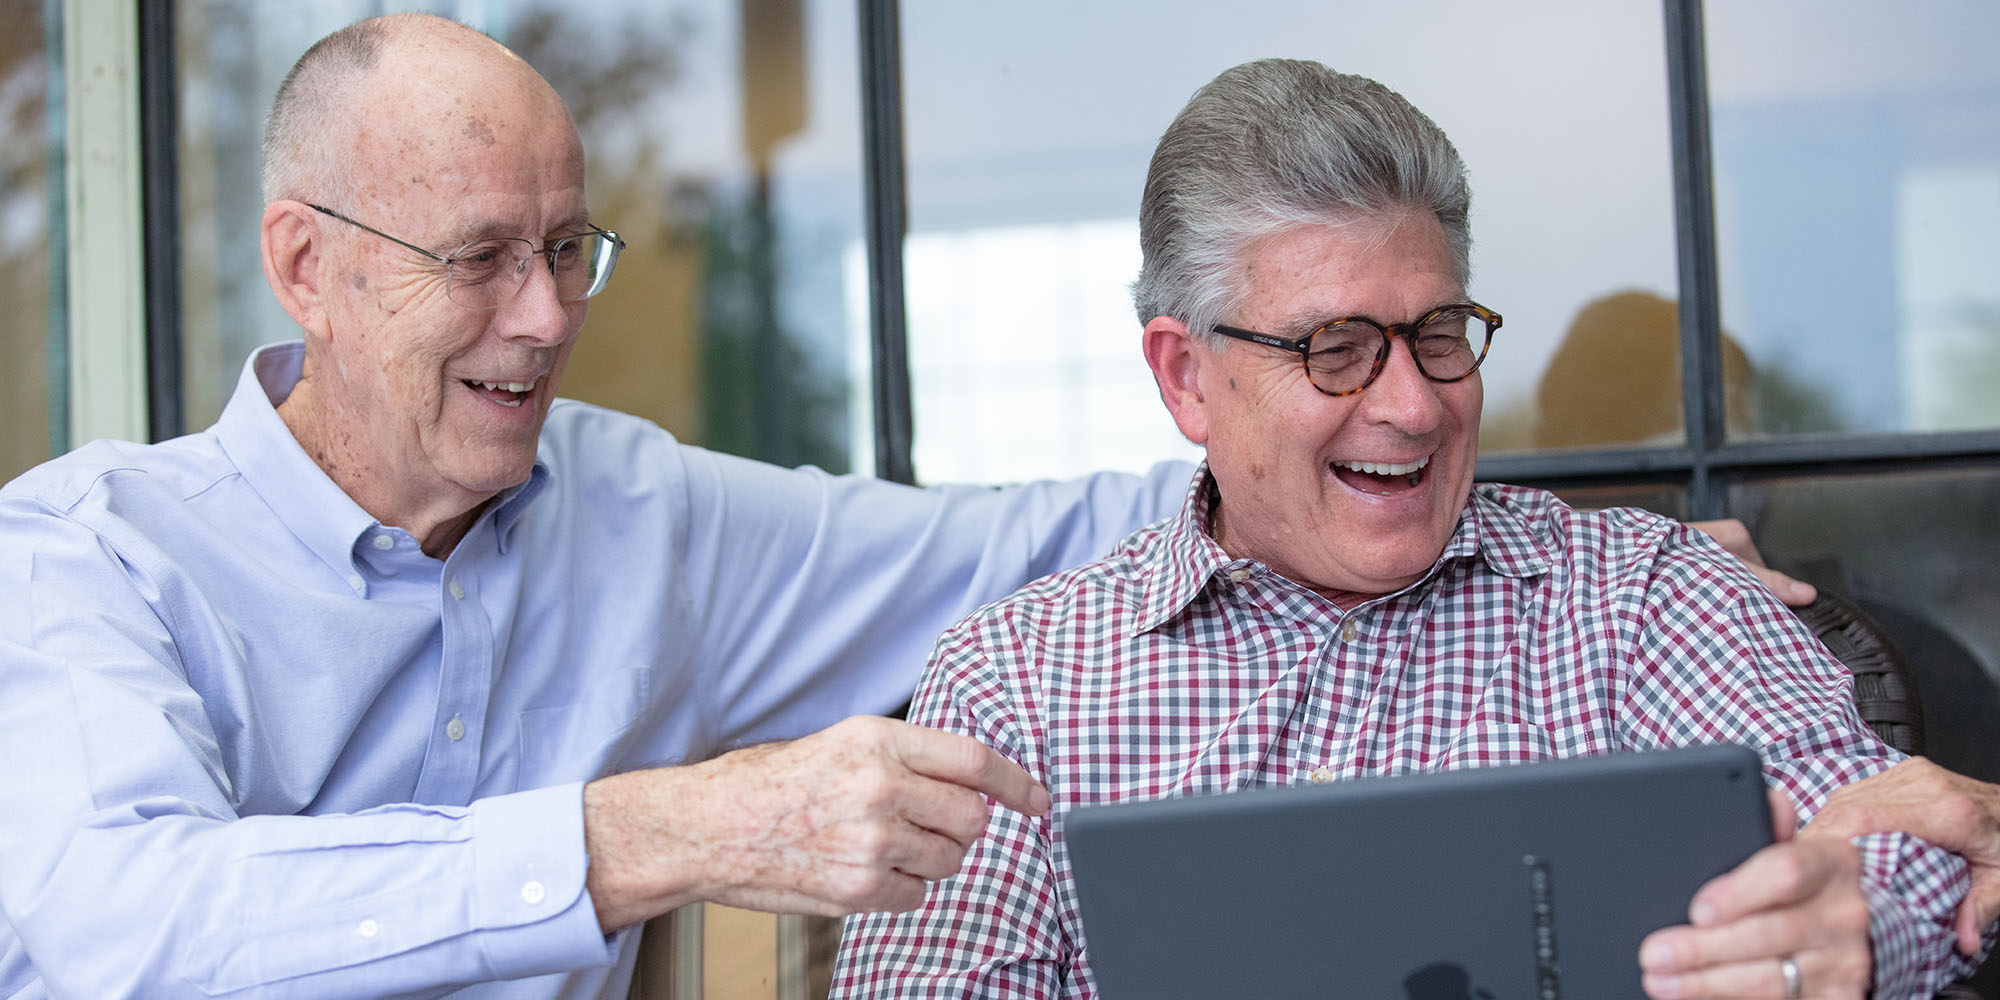 Two senior men looking at a tablet